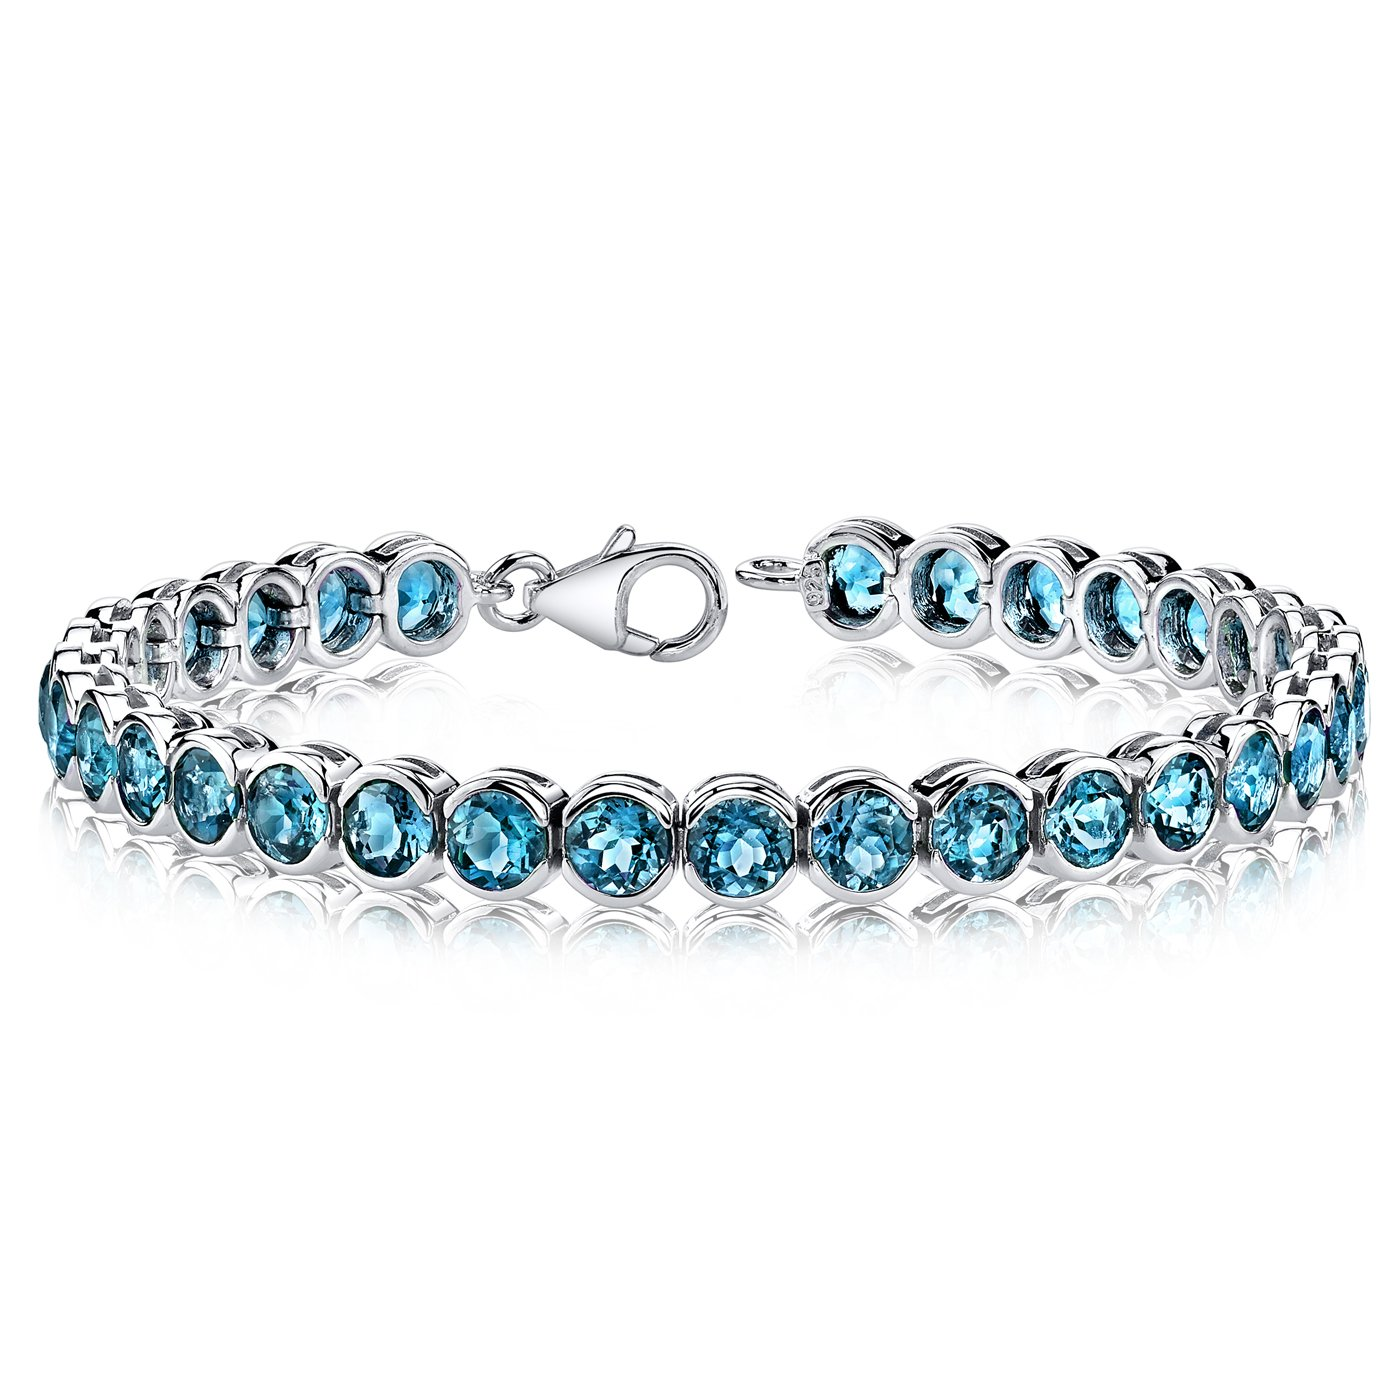 19.00 carats Round Cut London Blue Topaz Tennis Bracelet in Sterling Silver Rhodium Nickel Finish by Peora